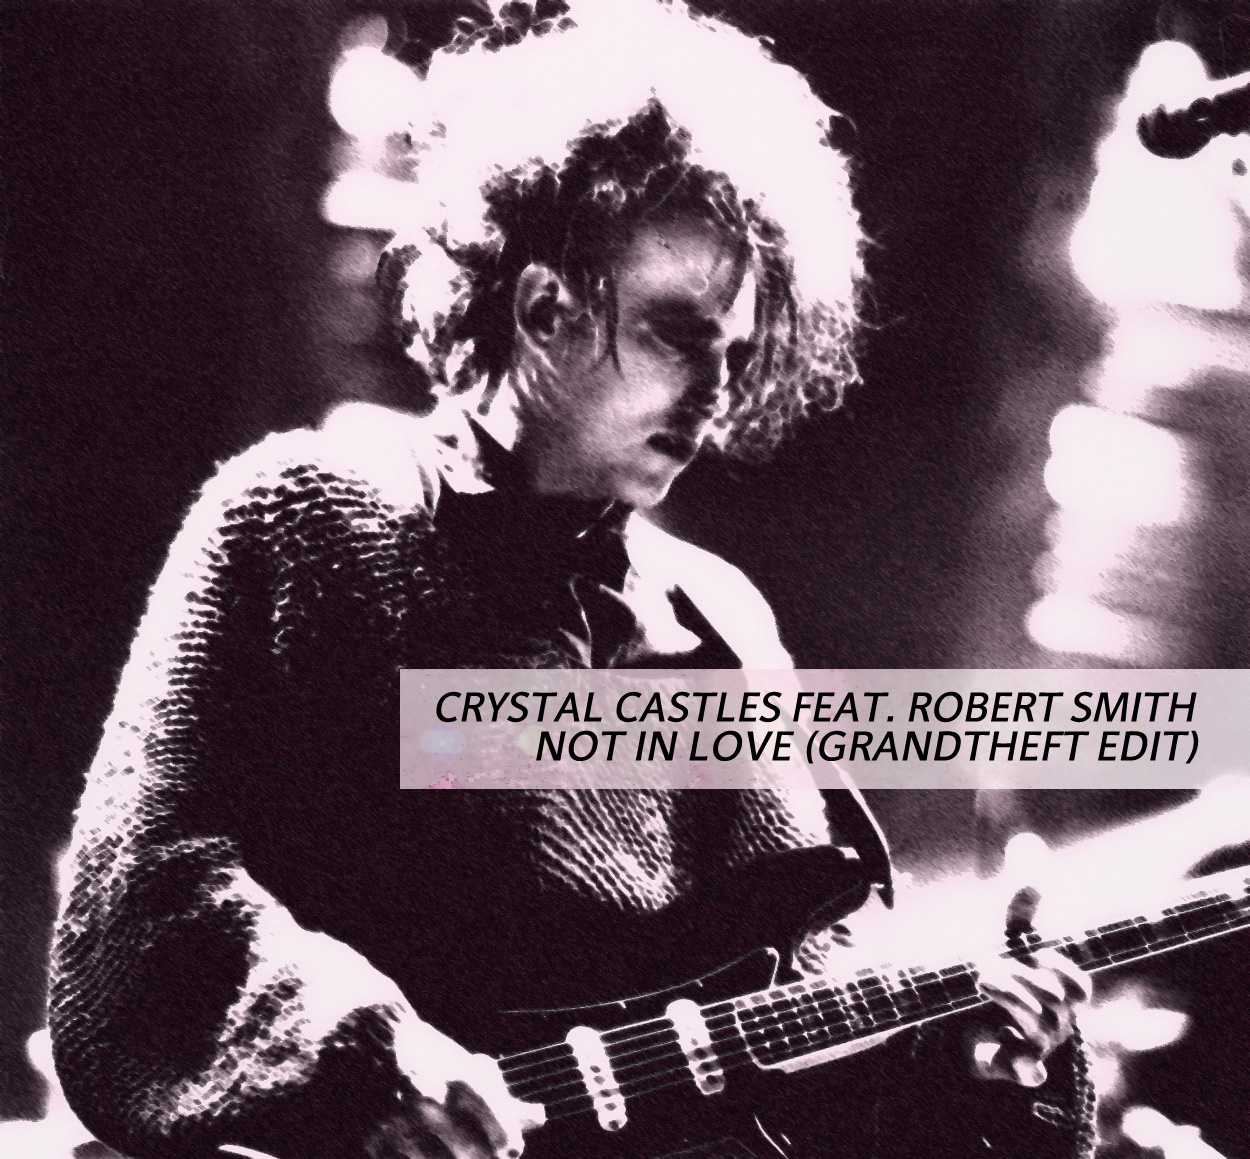 TRAP | Crystal Castles Feat. Robert Smith - Not In Love (Grandtheft Edit)